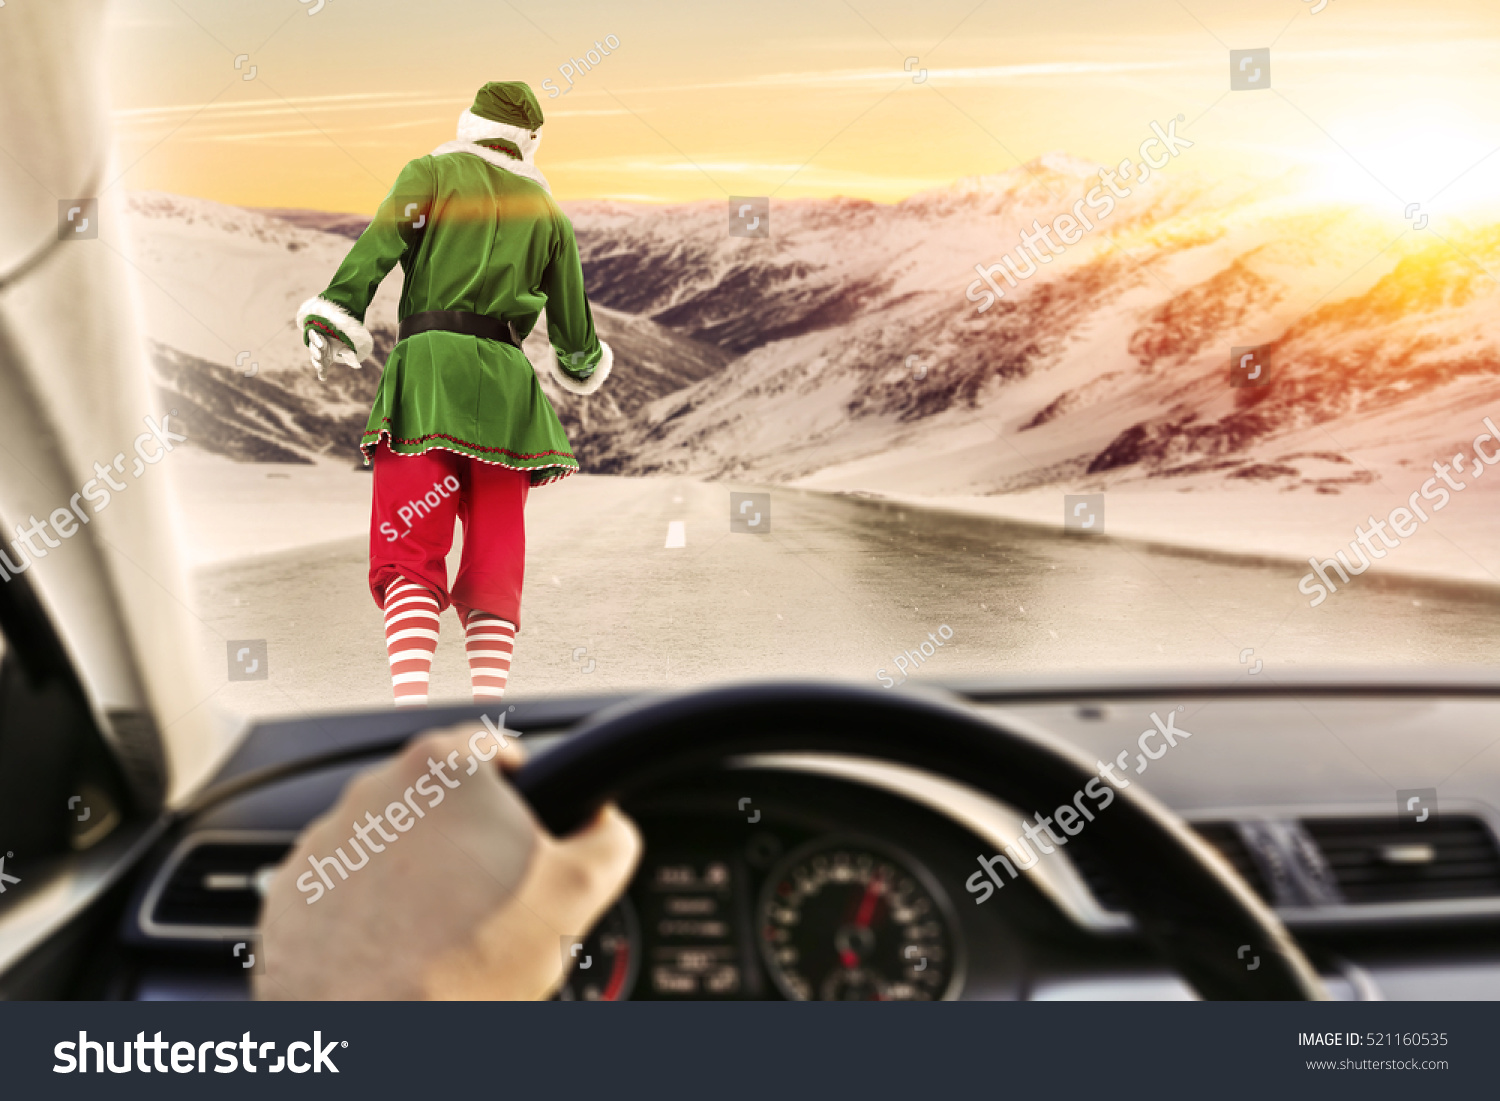 fast driver car interior on winter stock photo 521160535 shutterstock. Black Bedroom Furniture Sets. Home Design Ideas